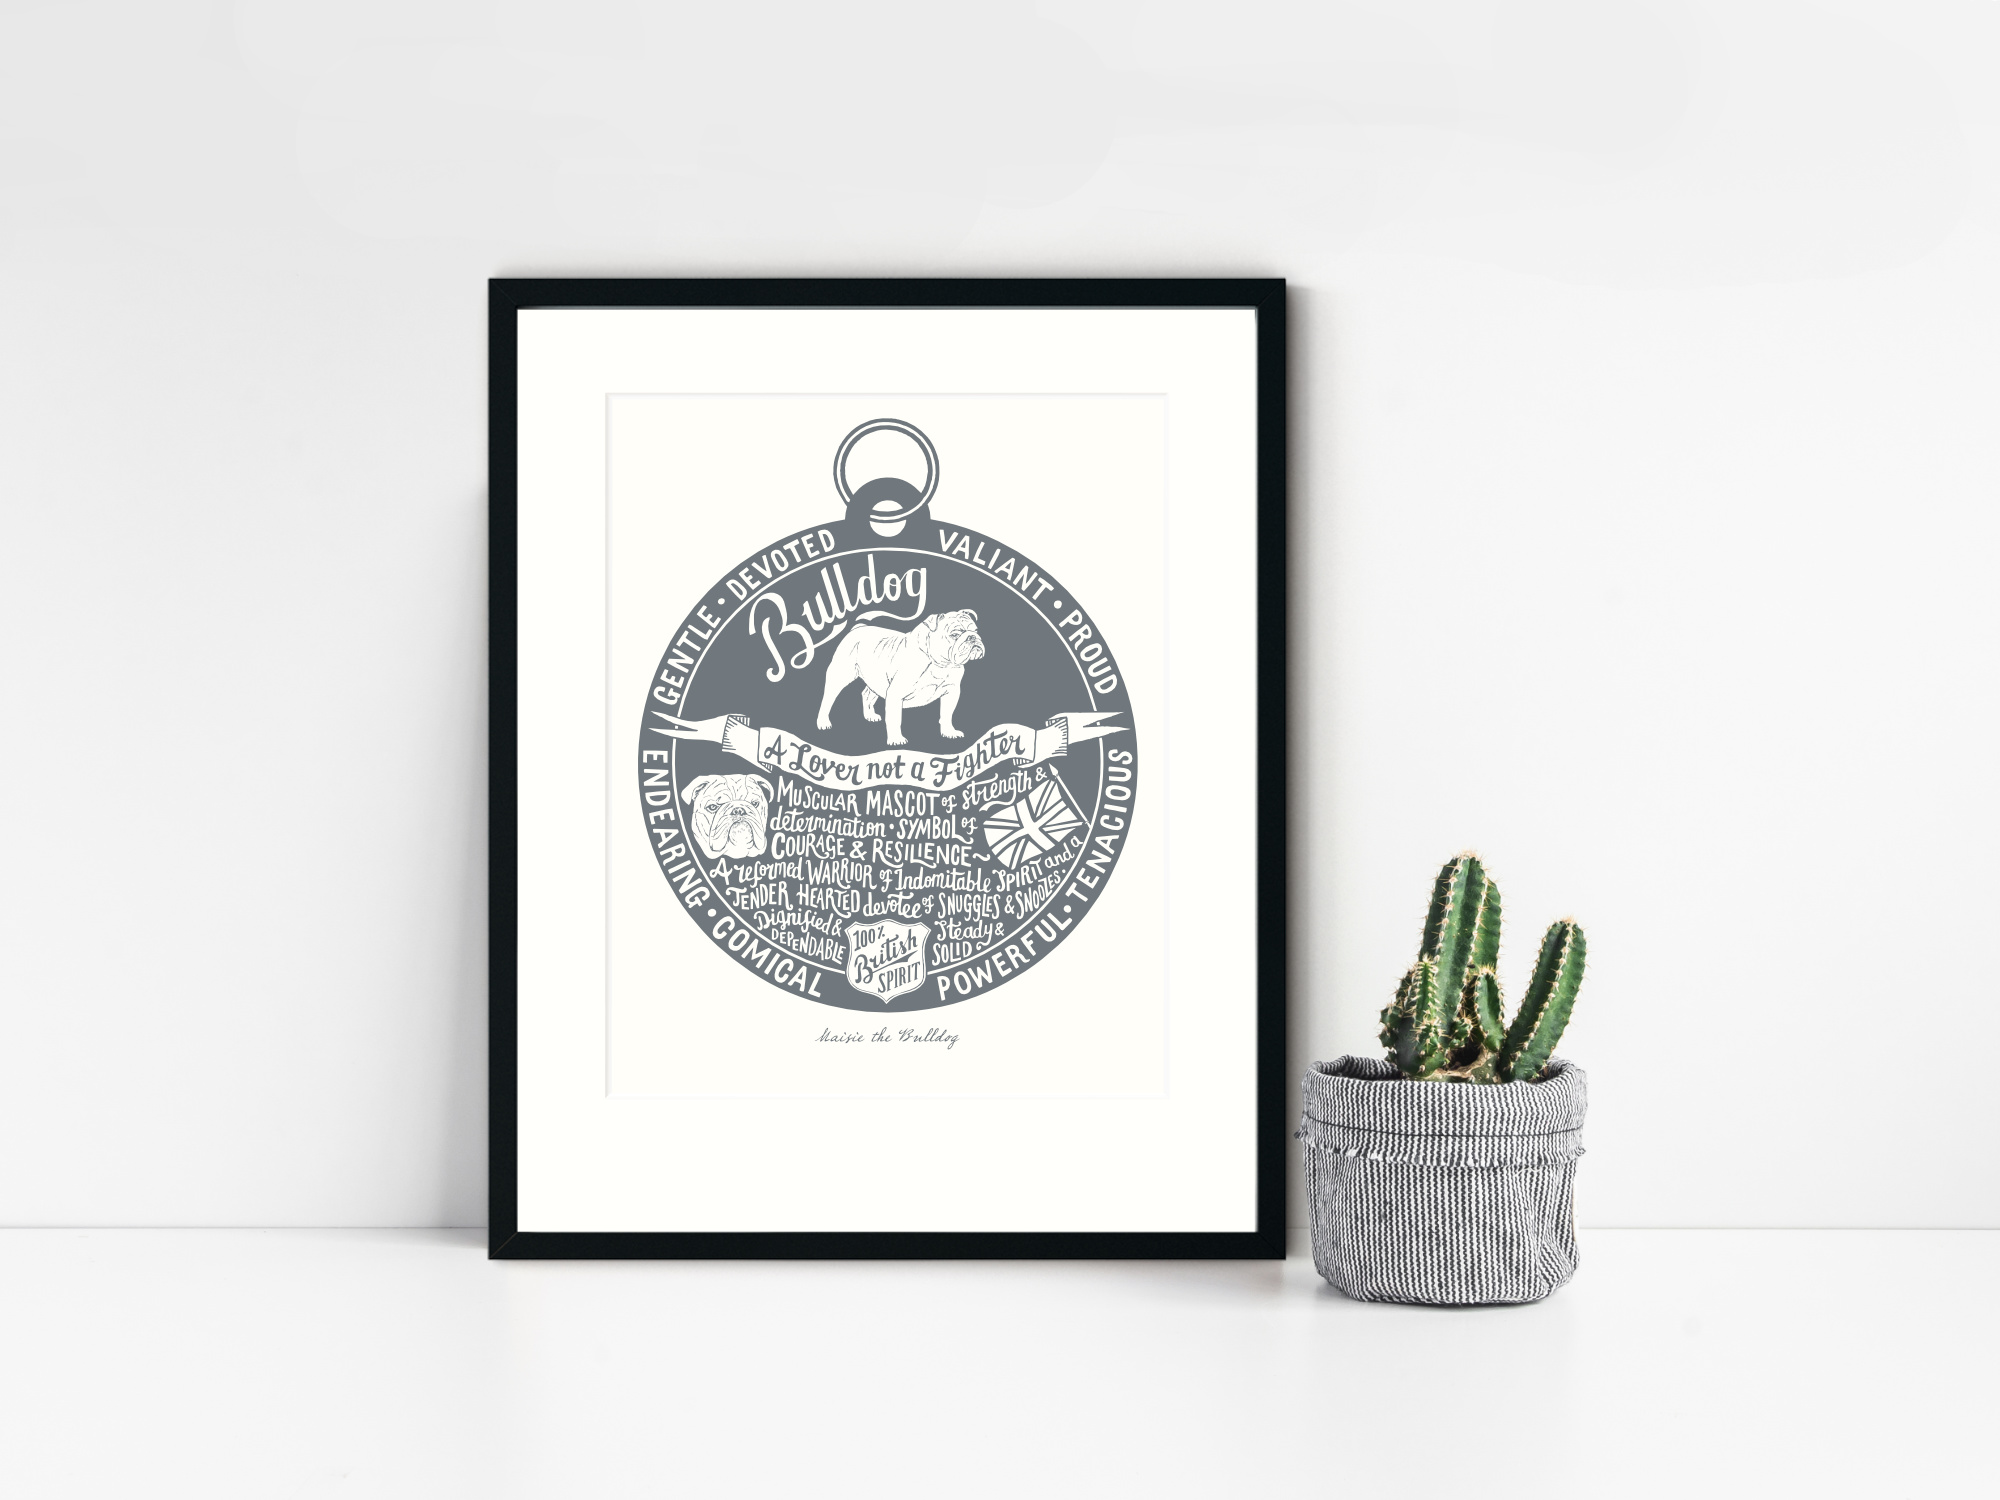 English Bulldog lover art gifts by The Enlightened Hound